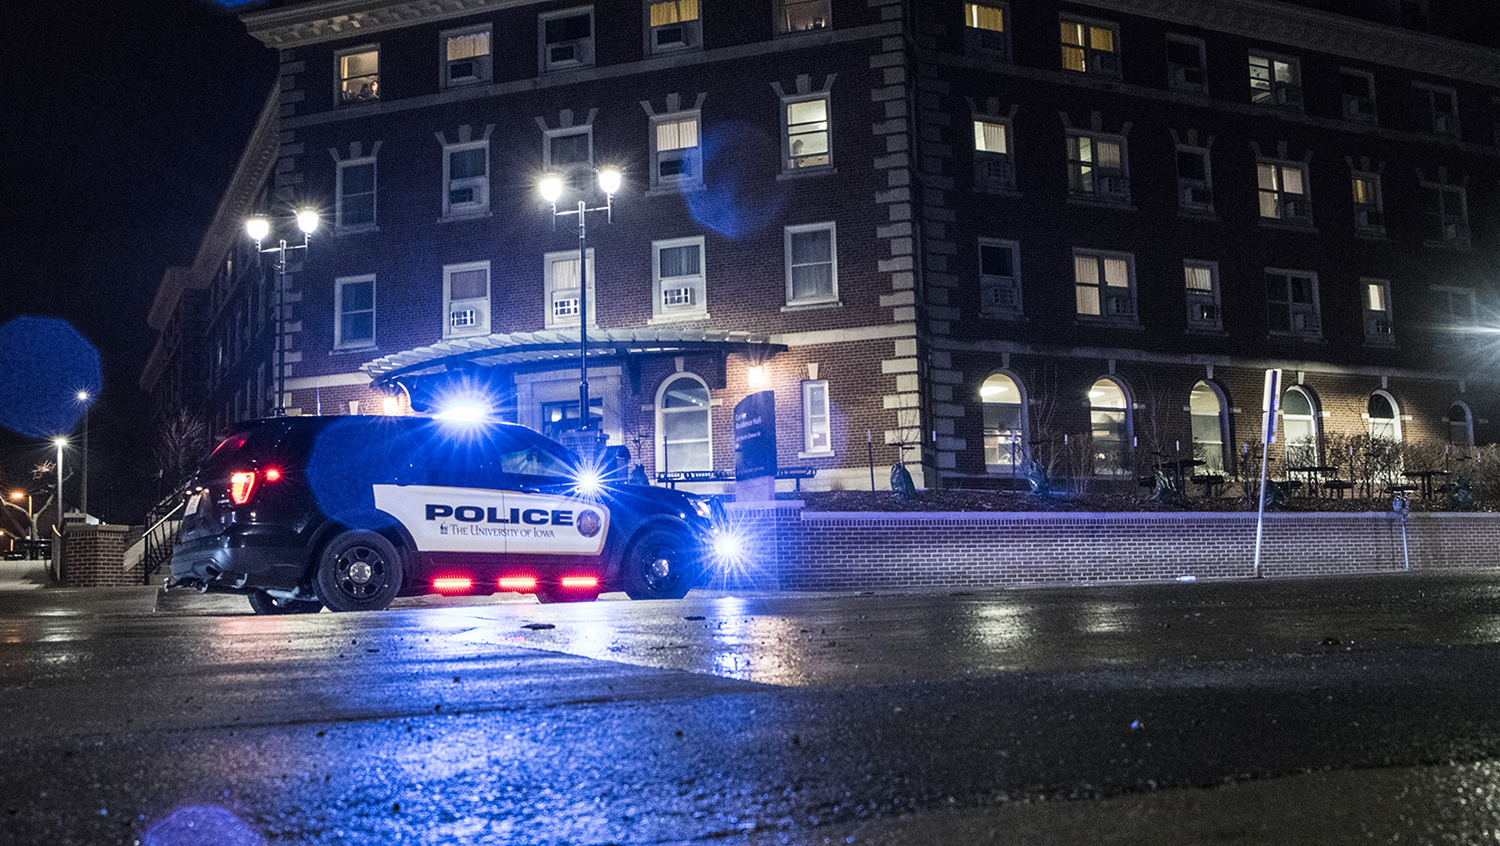 Iowa City and University of Iowa police respond to loud bangs at Currier Residence Hall on Wednesday, Feb. 28, 2018.